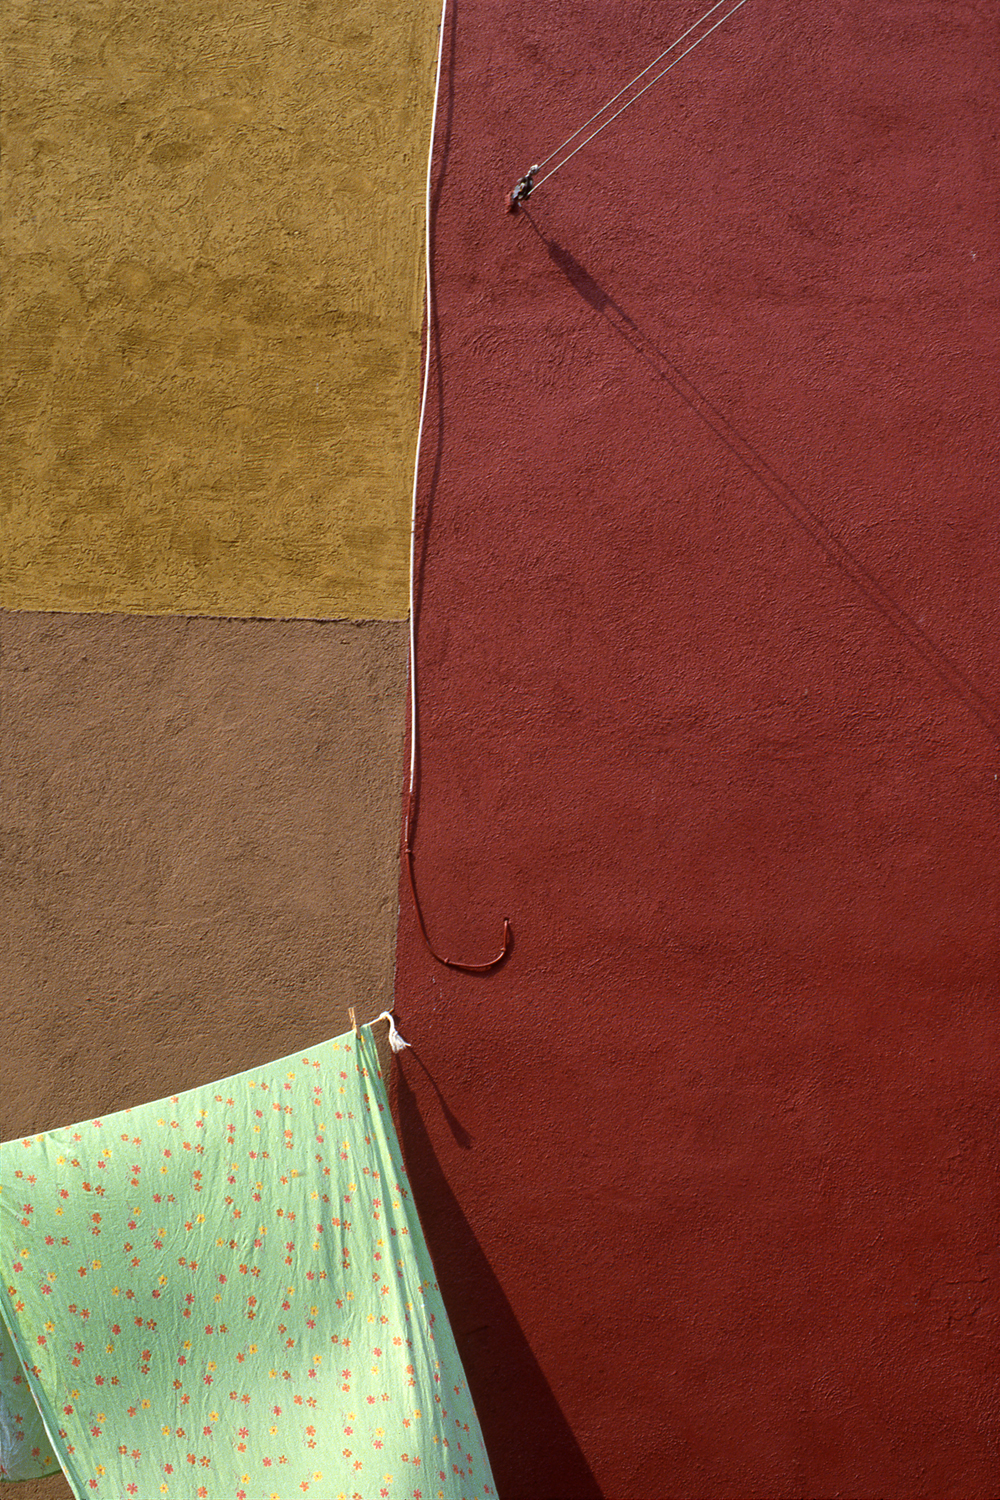 Green Sheet, Burano Italy, 1978 , Cibachrome Print, 24 x 16cm, Edition of 10.                            Exhibition:  Burano Colour Works , Australian Centre for Photography, Sydney; Solander Gallery, Canberra; Wagga Wagga City Art Gallery, Wagga Wagga, 1979.